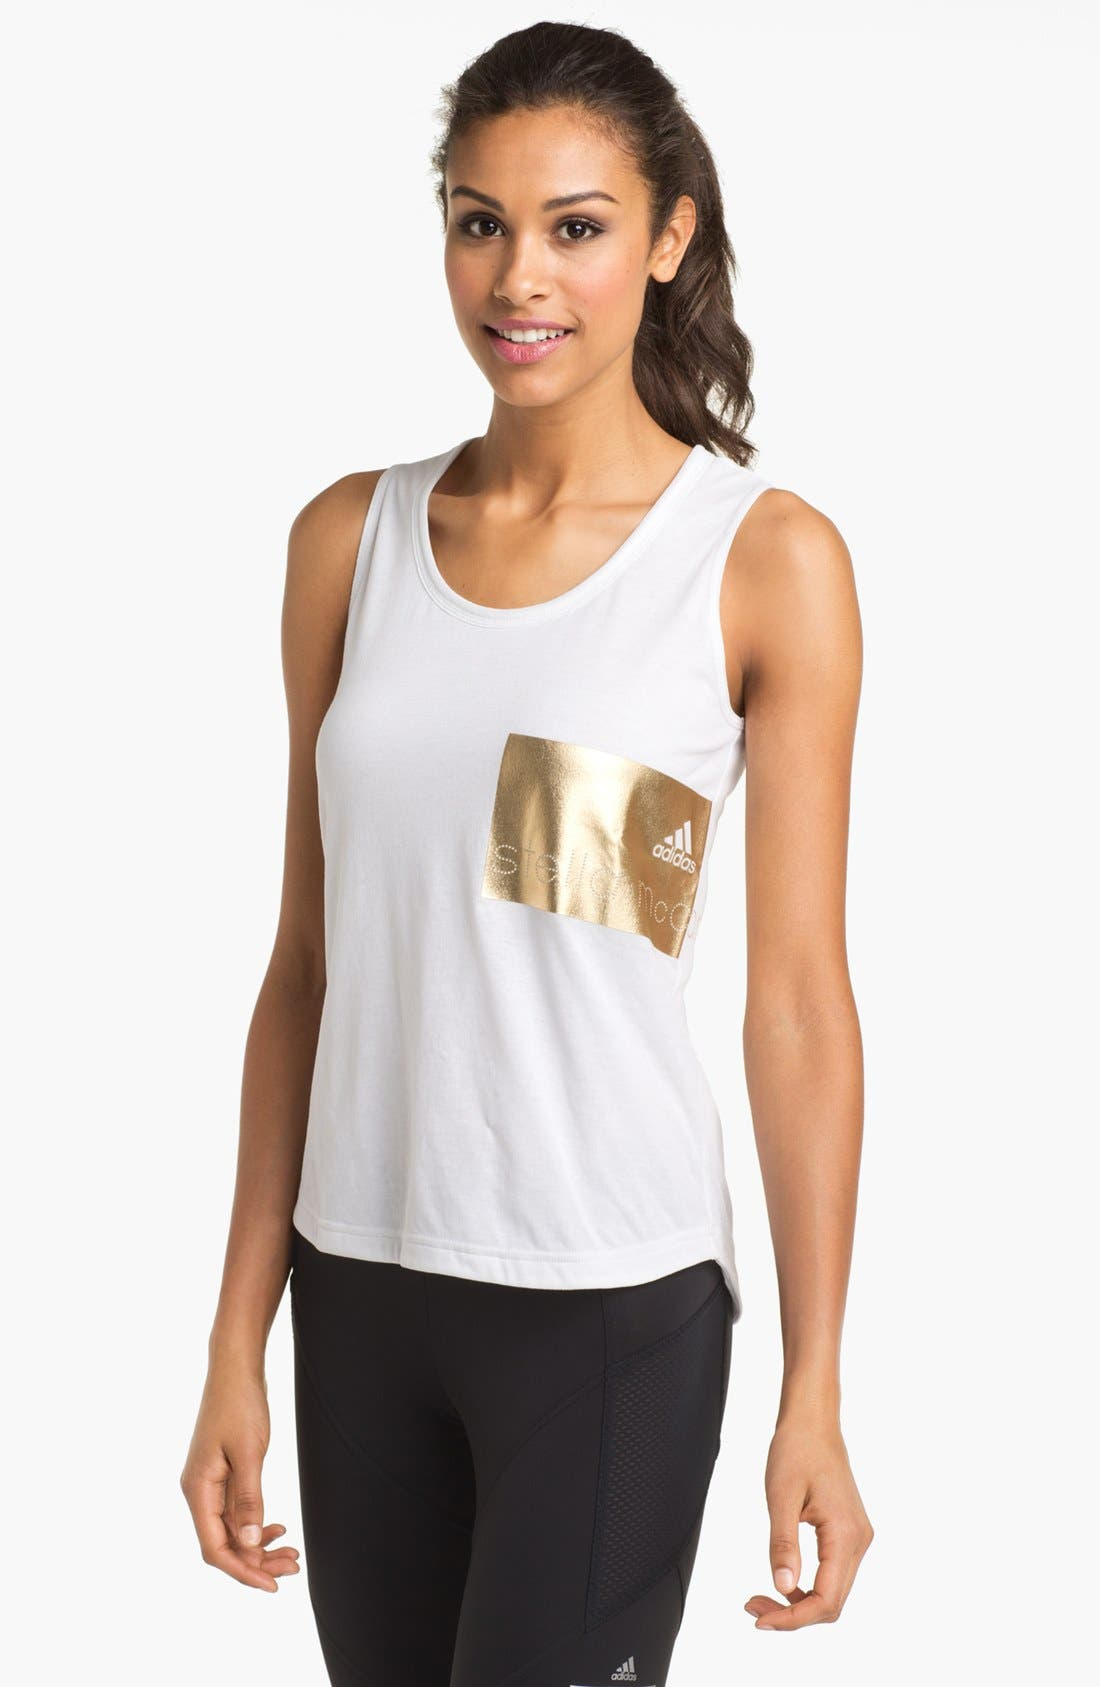 Main Image - adidas by Stella McCartney 'Essentials - Packaged' Tank